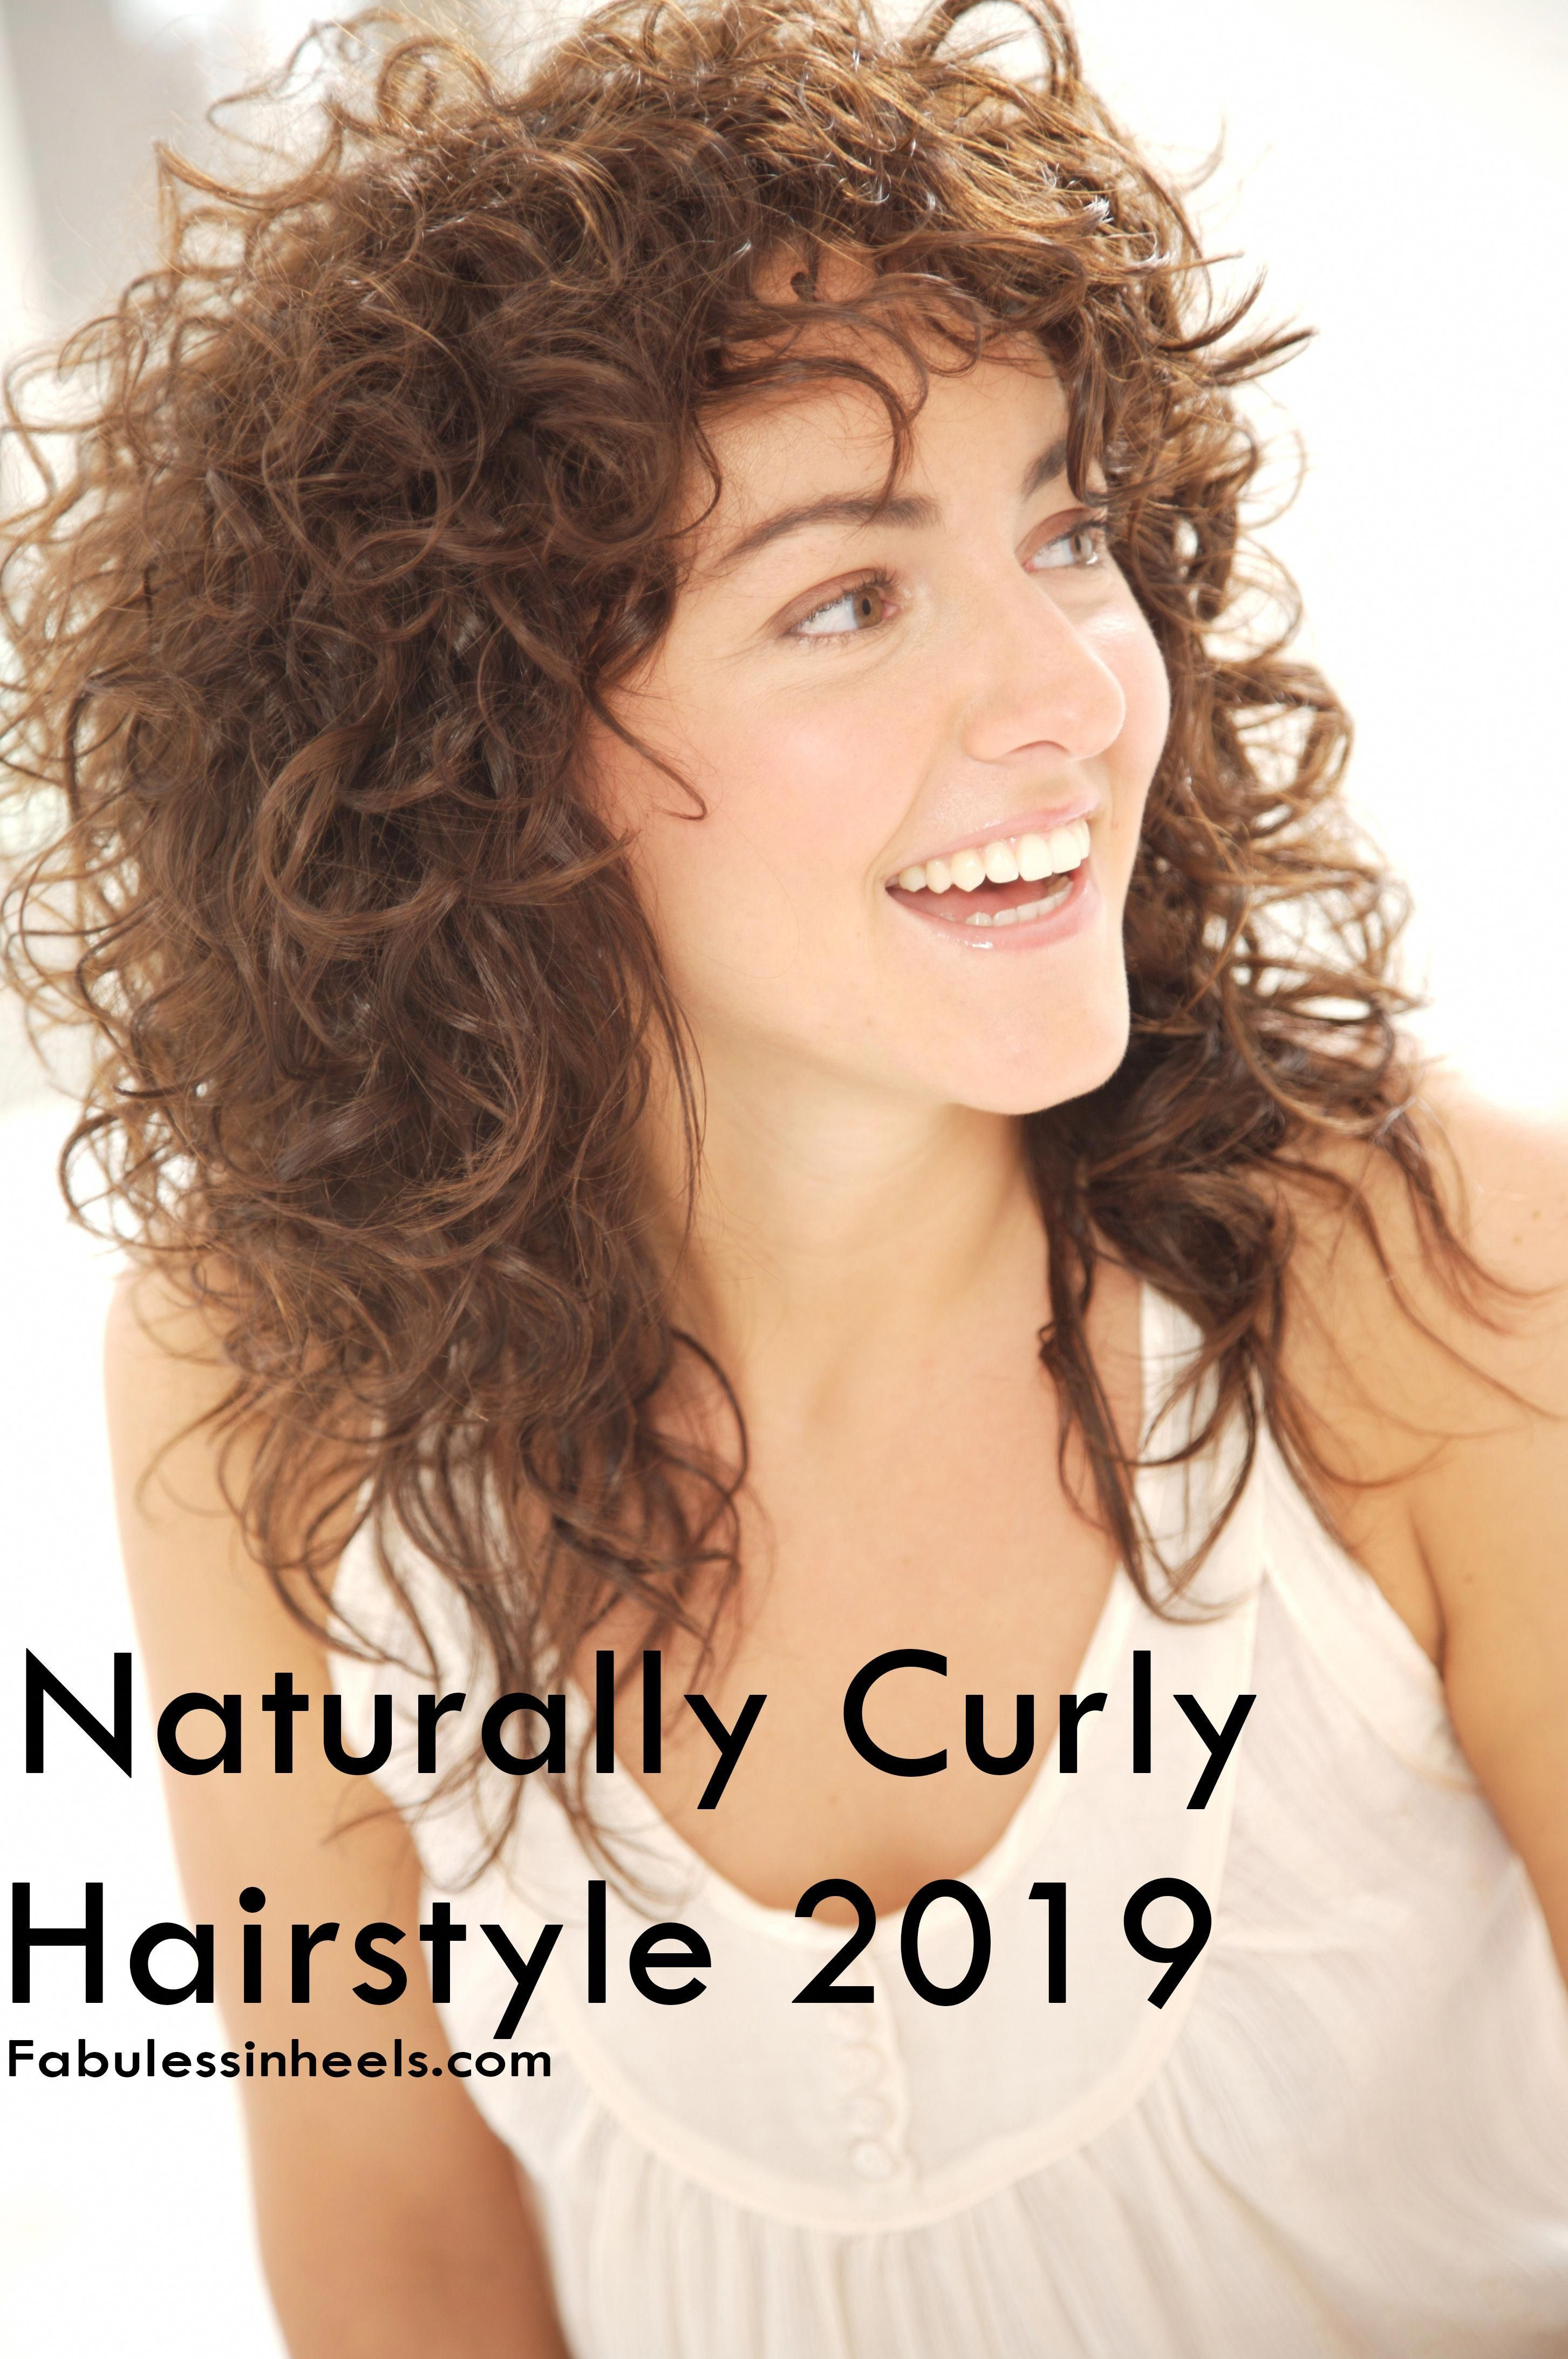 Naturally Curly Hair 2019 For Womens With Medium Length Hairstyle Hairstyleforwomen Medium Hair Styles Shoulder Length Curly Hair Curly Hair Styles Naturally